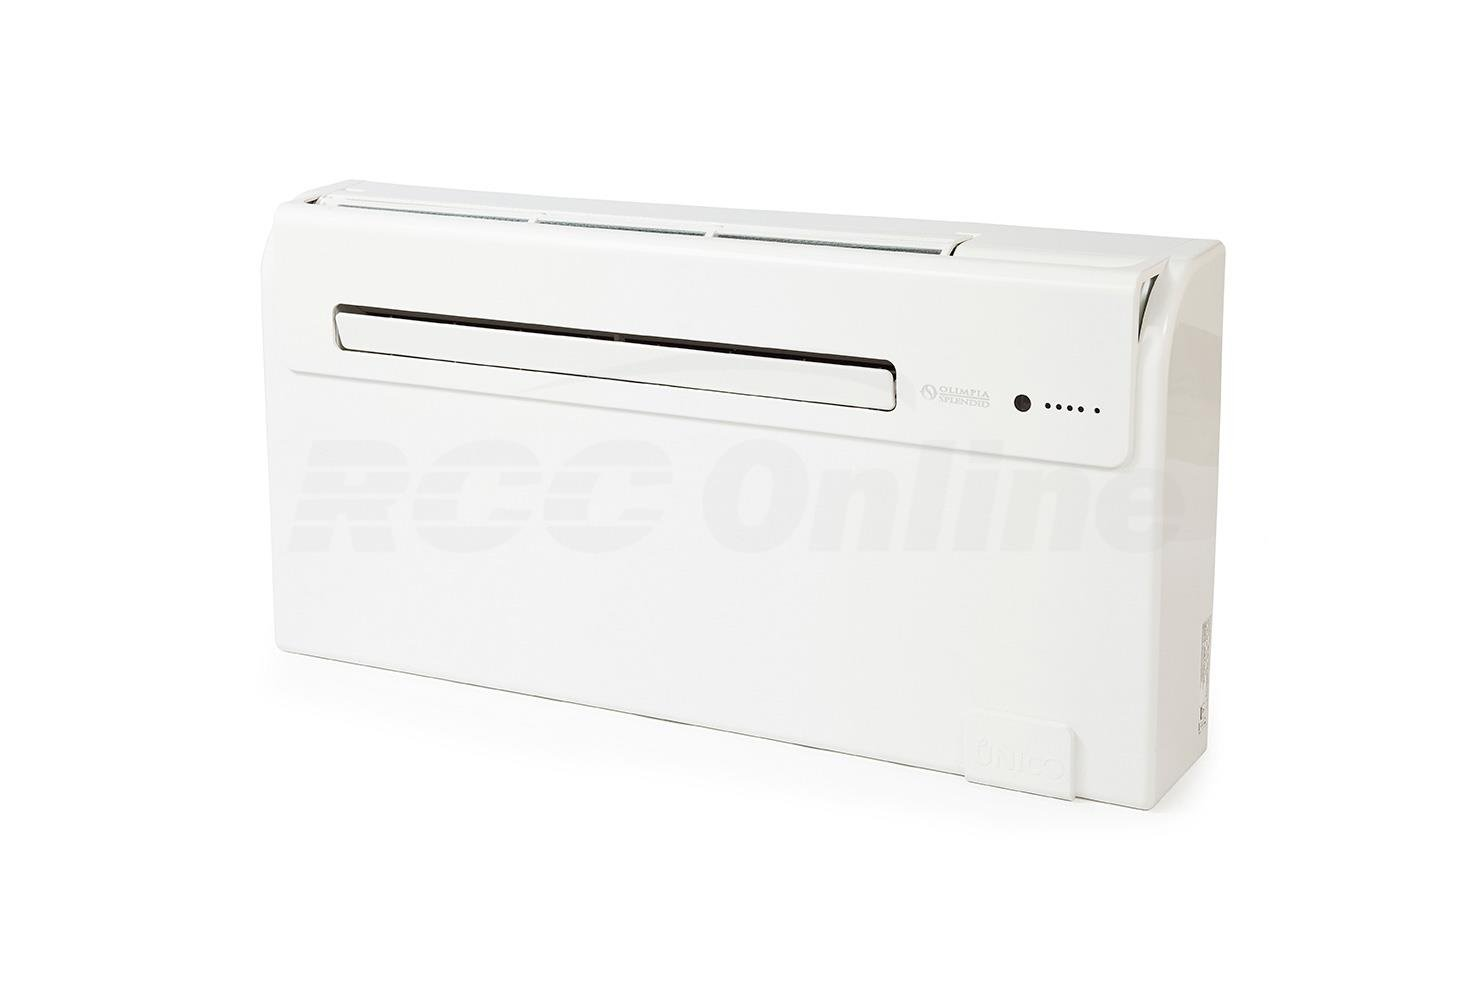 Olimpia Splendid Unico Air 8 Sf 1 8kw Cooling Only All In